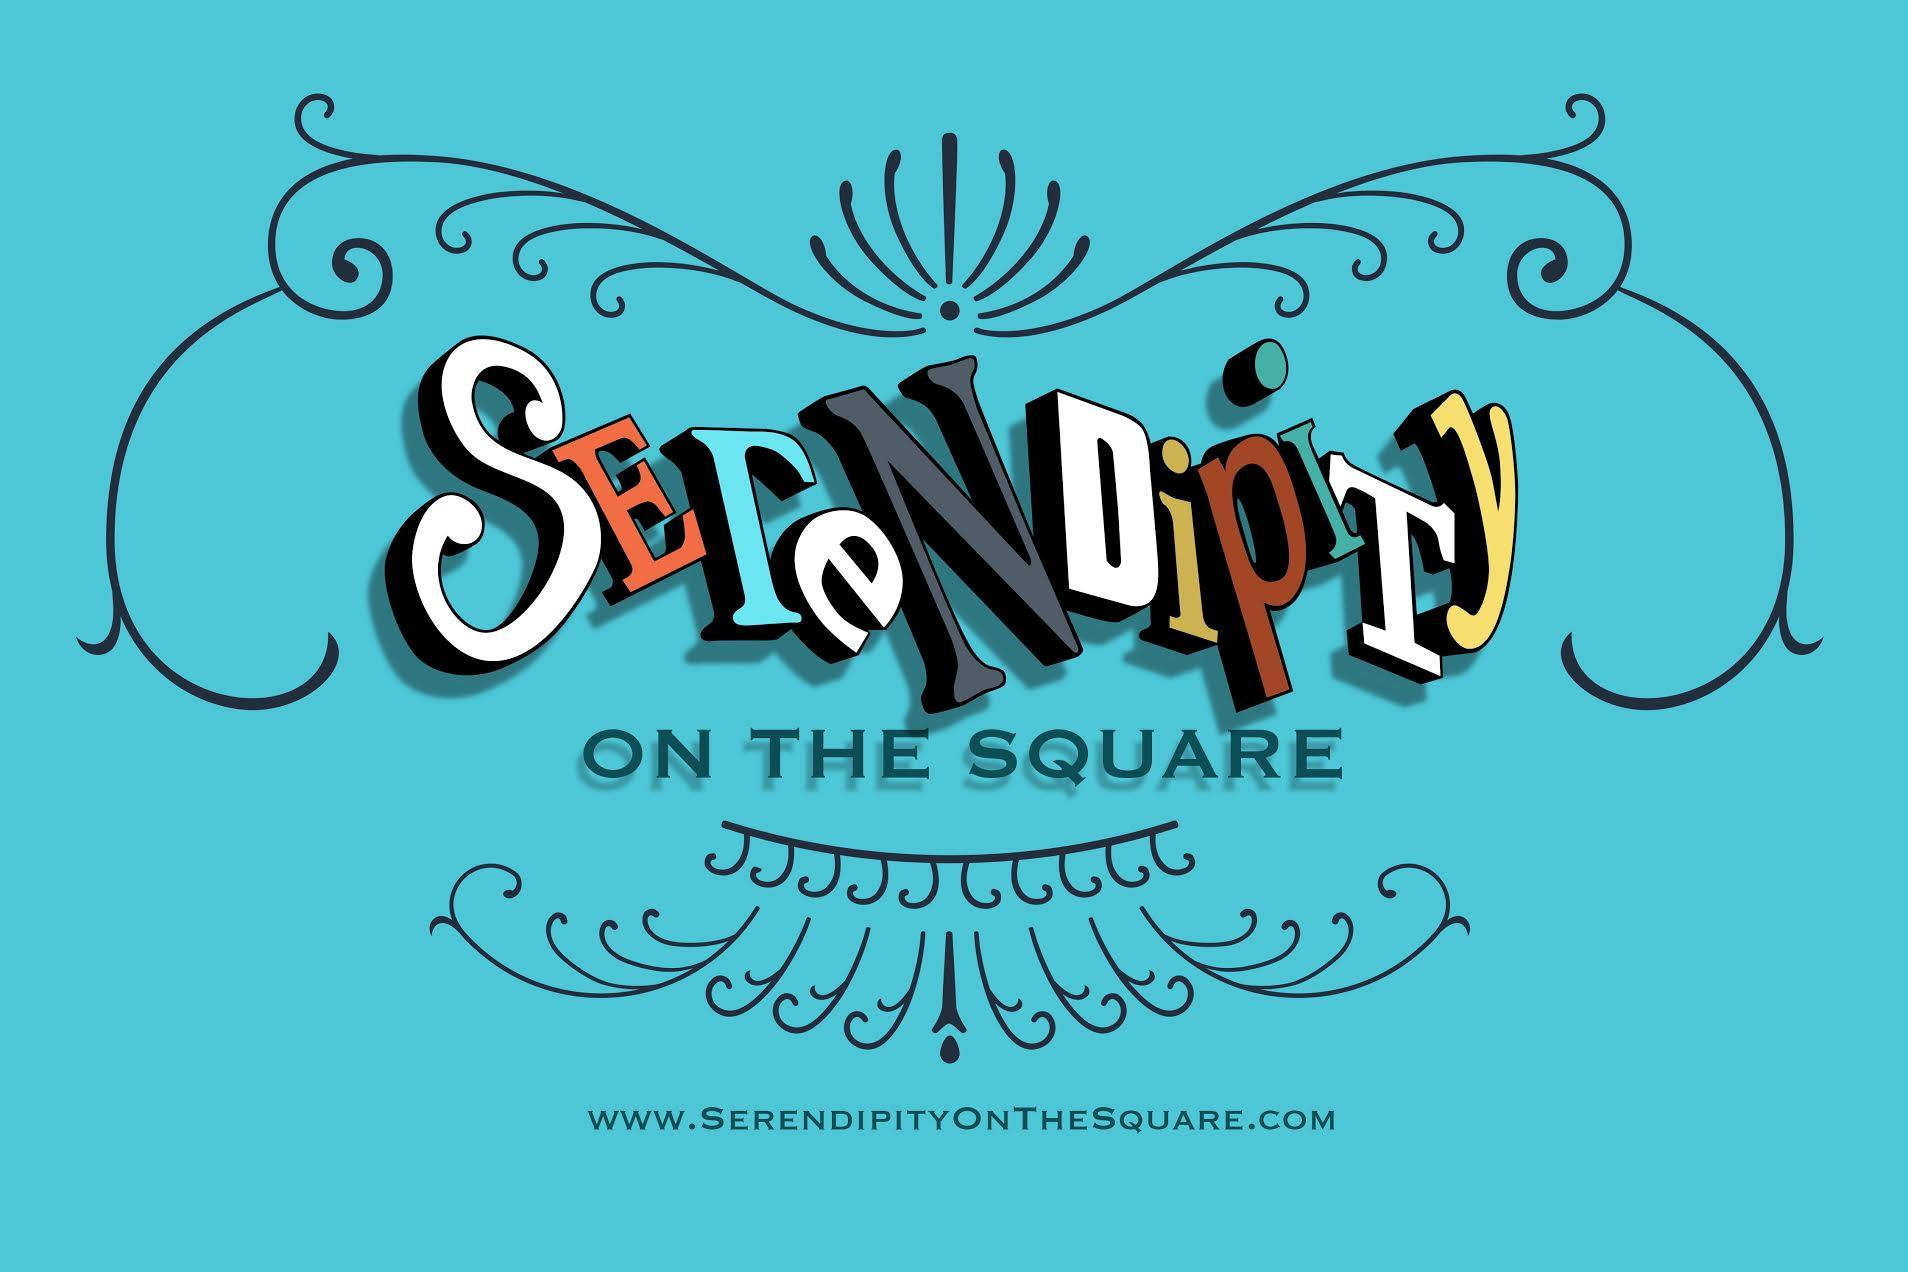 Serendipity on the Square